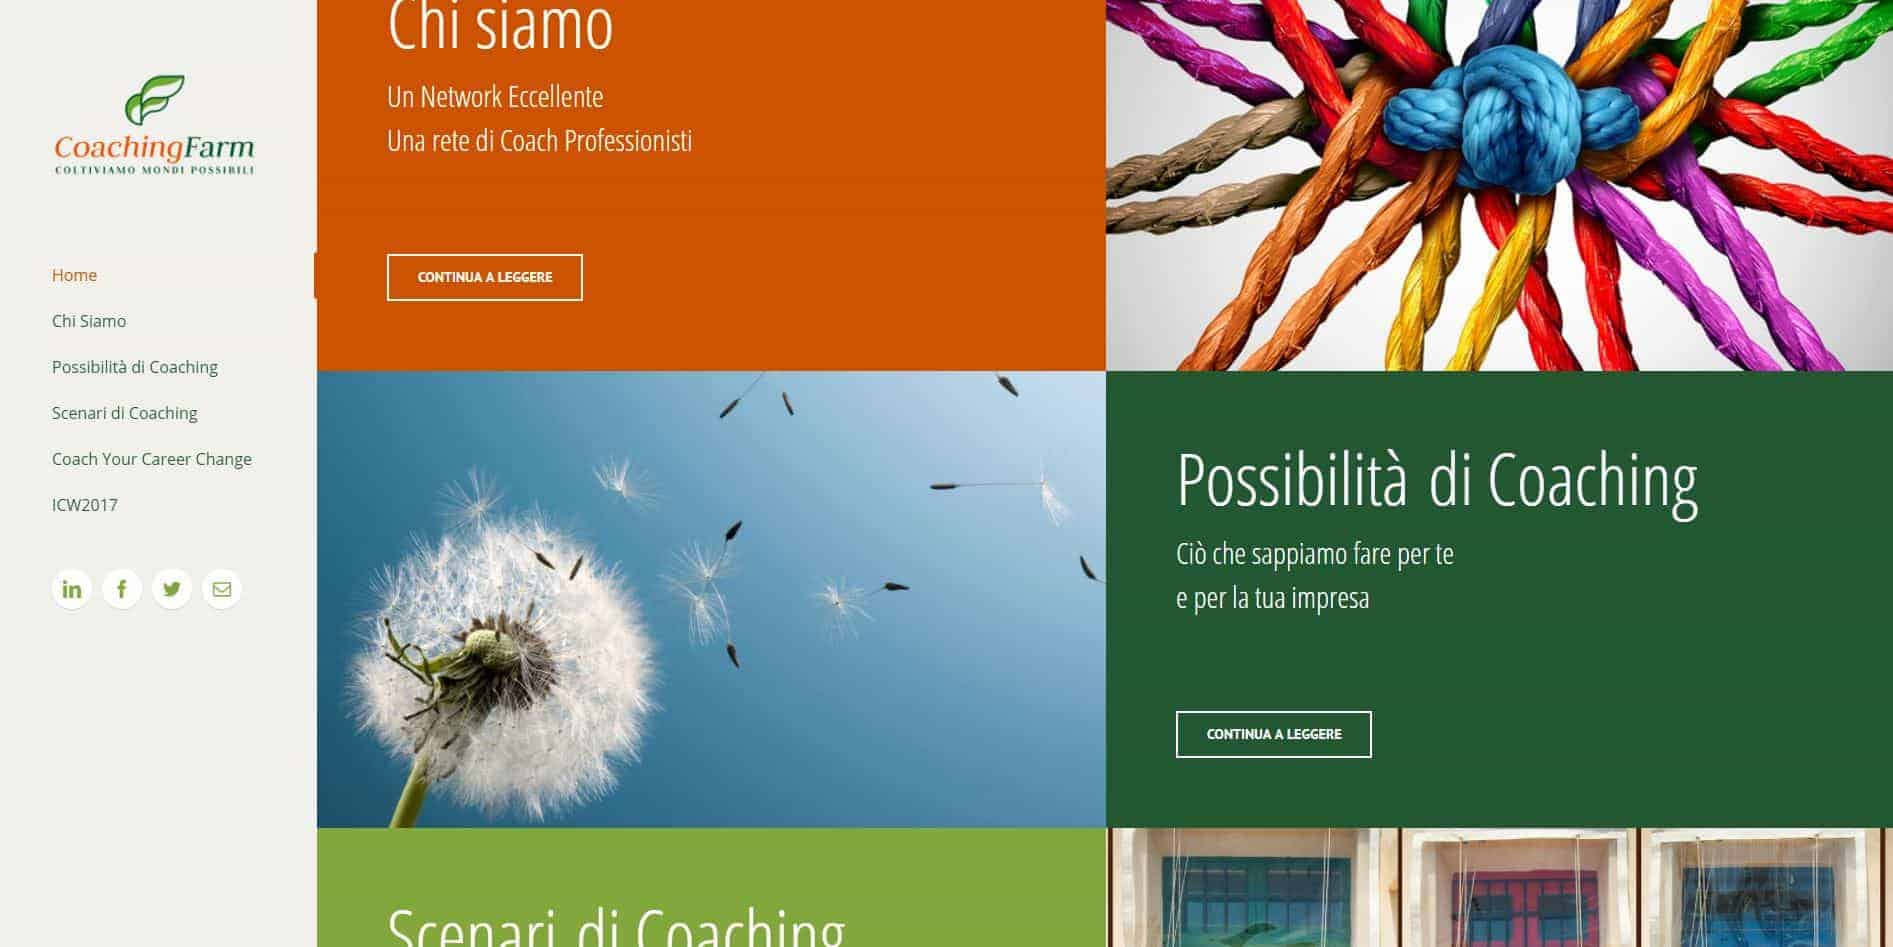 Siti web professionali di Coaching